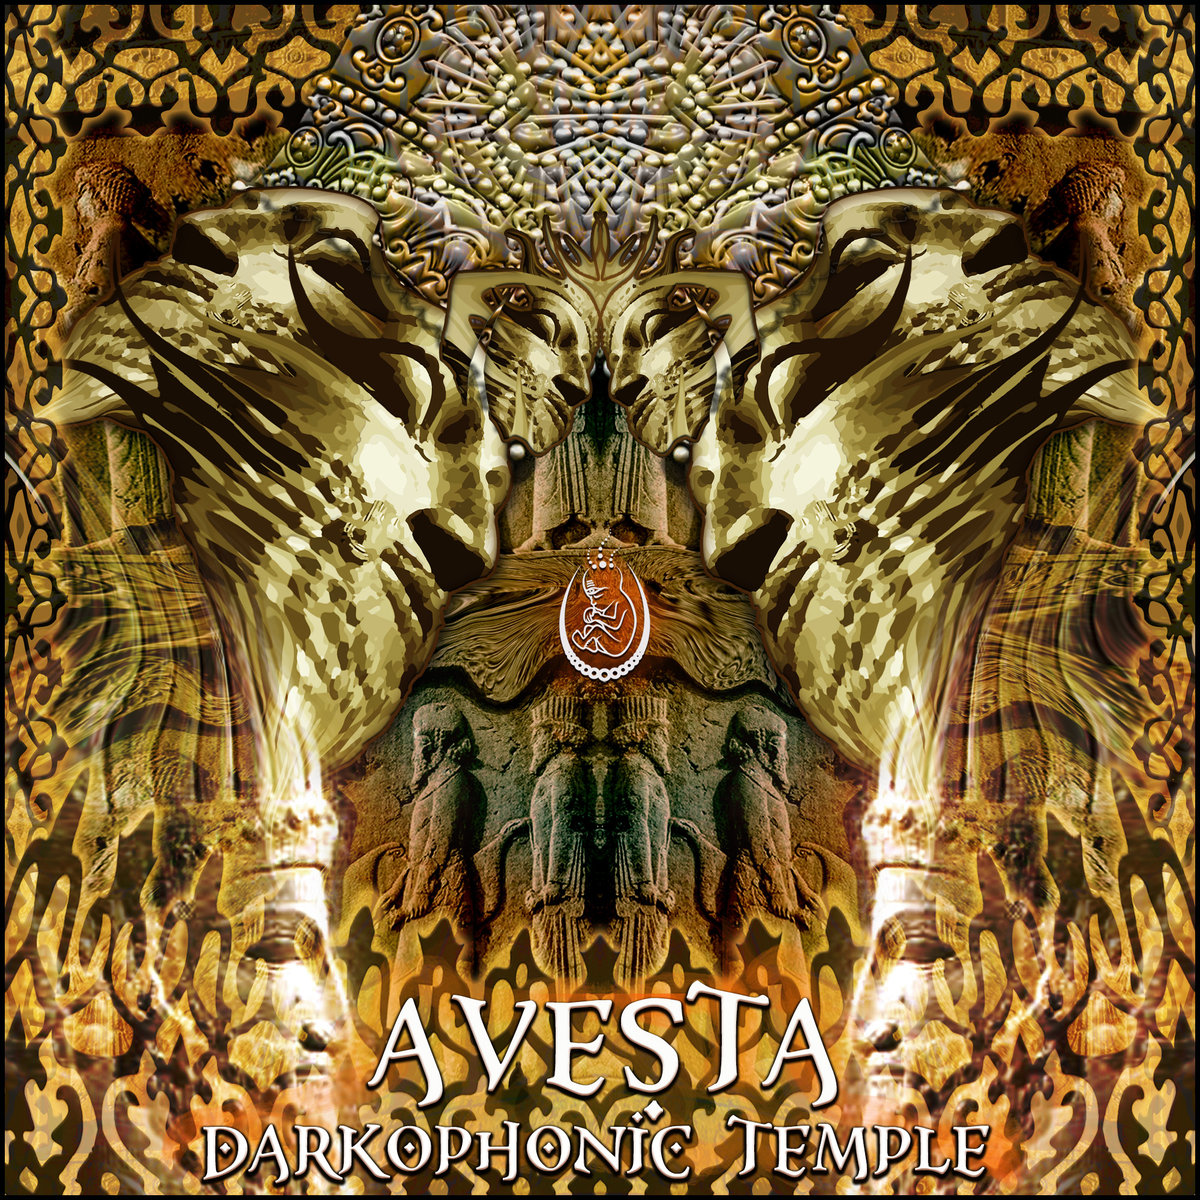 Darkophonic Temple - Avesta (artwork)